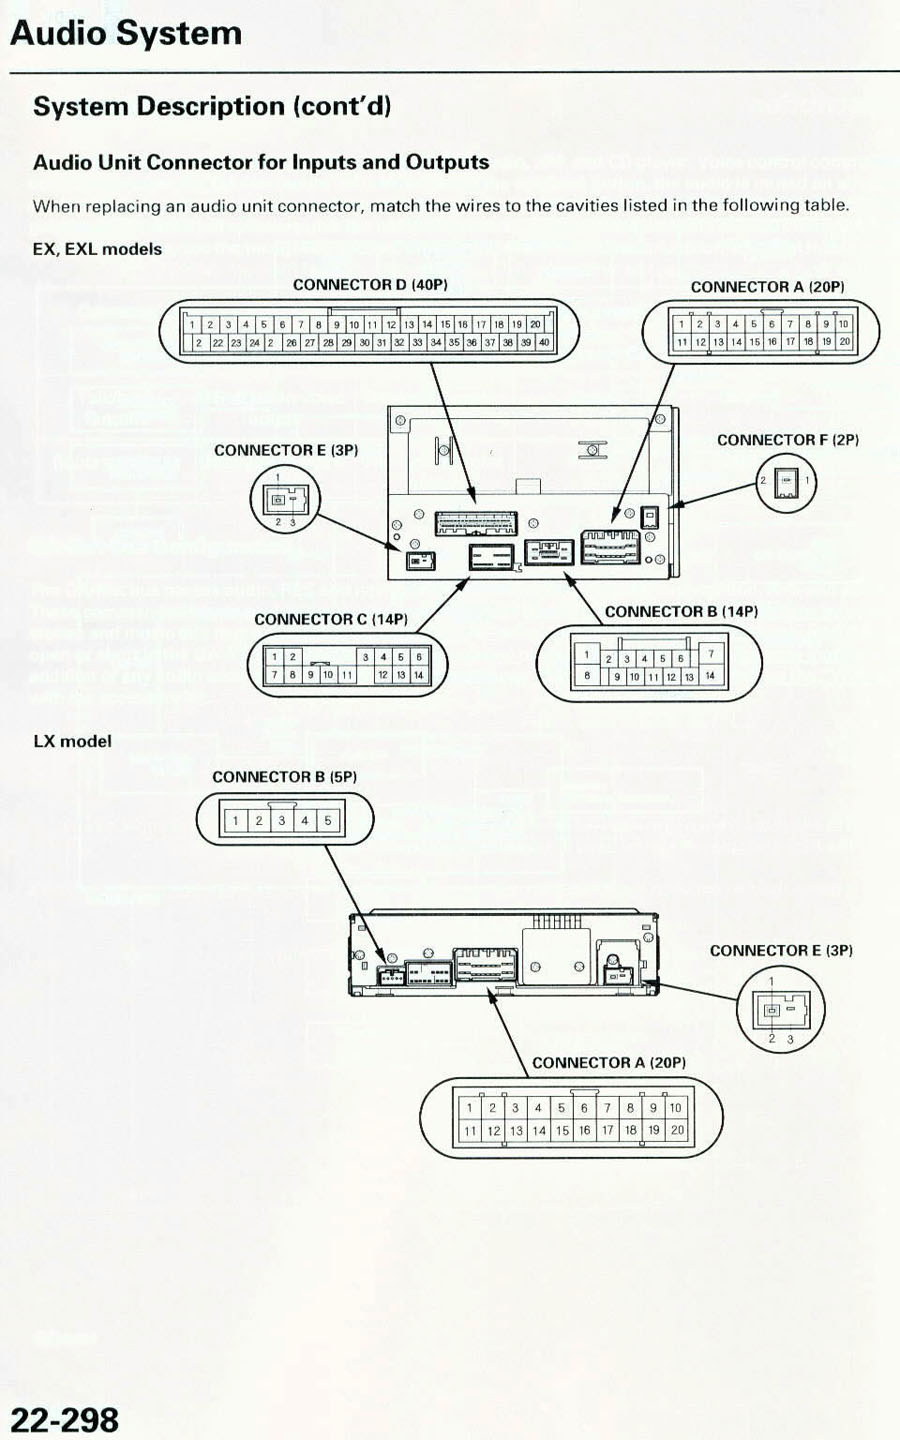 32969d1200063279 re factory subwoofer aftermarket hu audio_connector 2006 re factory subwoofer and aftermarket hu honda pilot honda honda crv 2003 stereo wiring diagram at bakdesigns.co